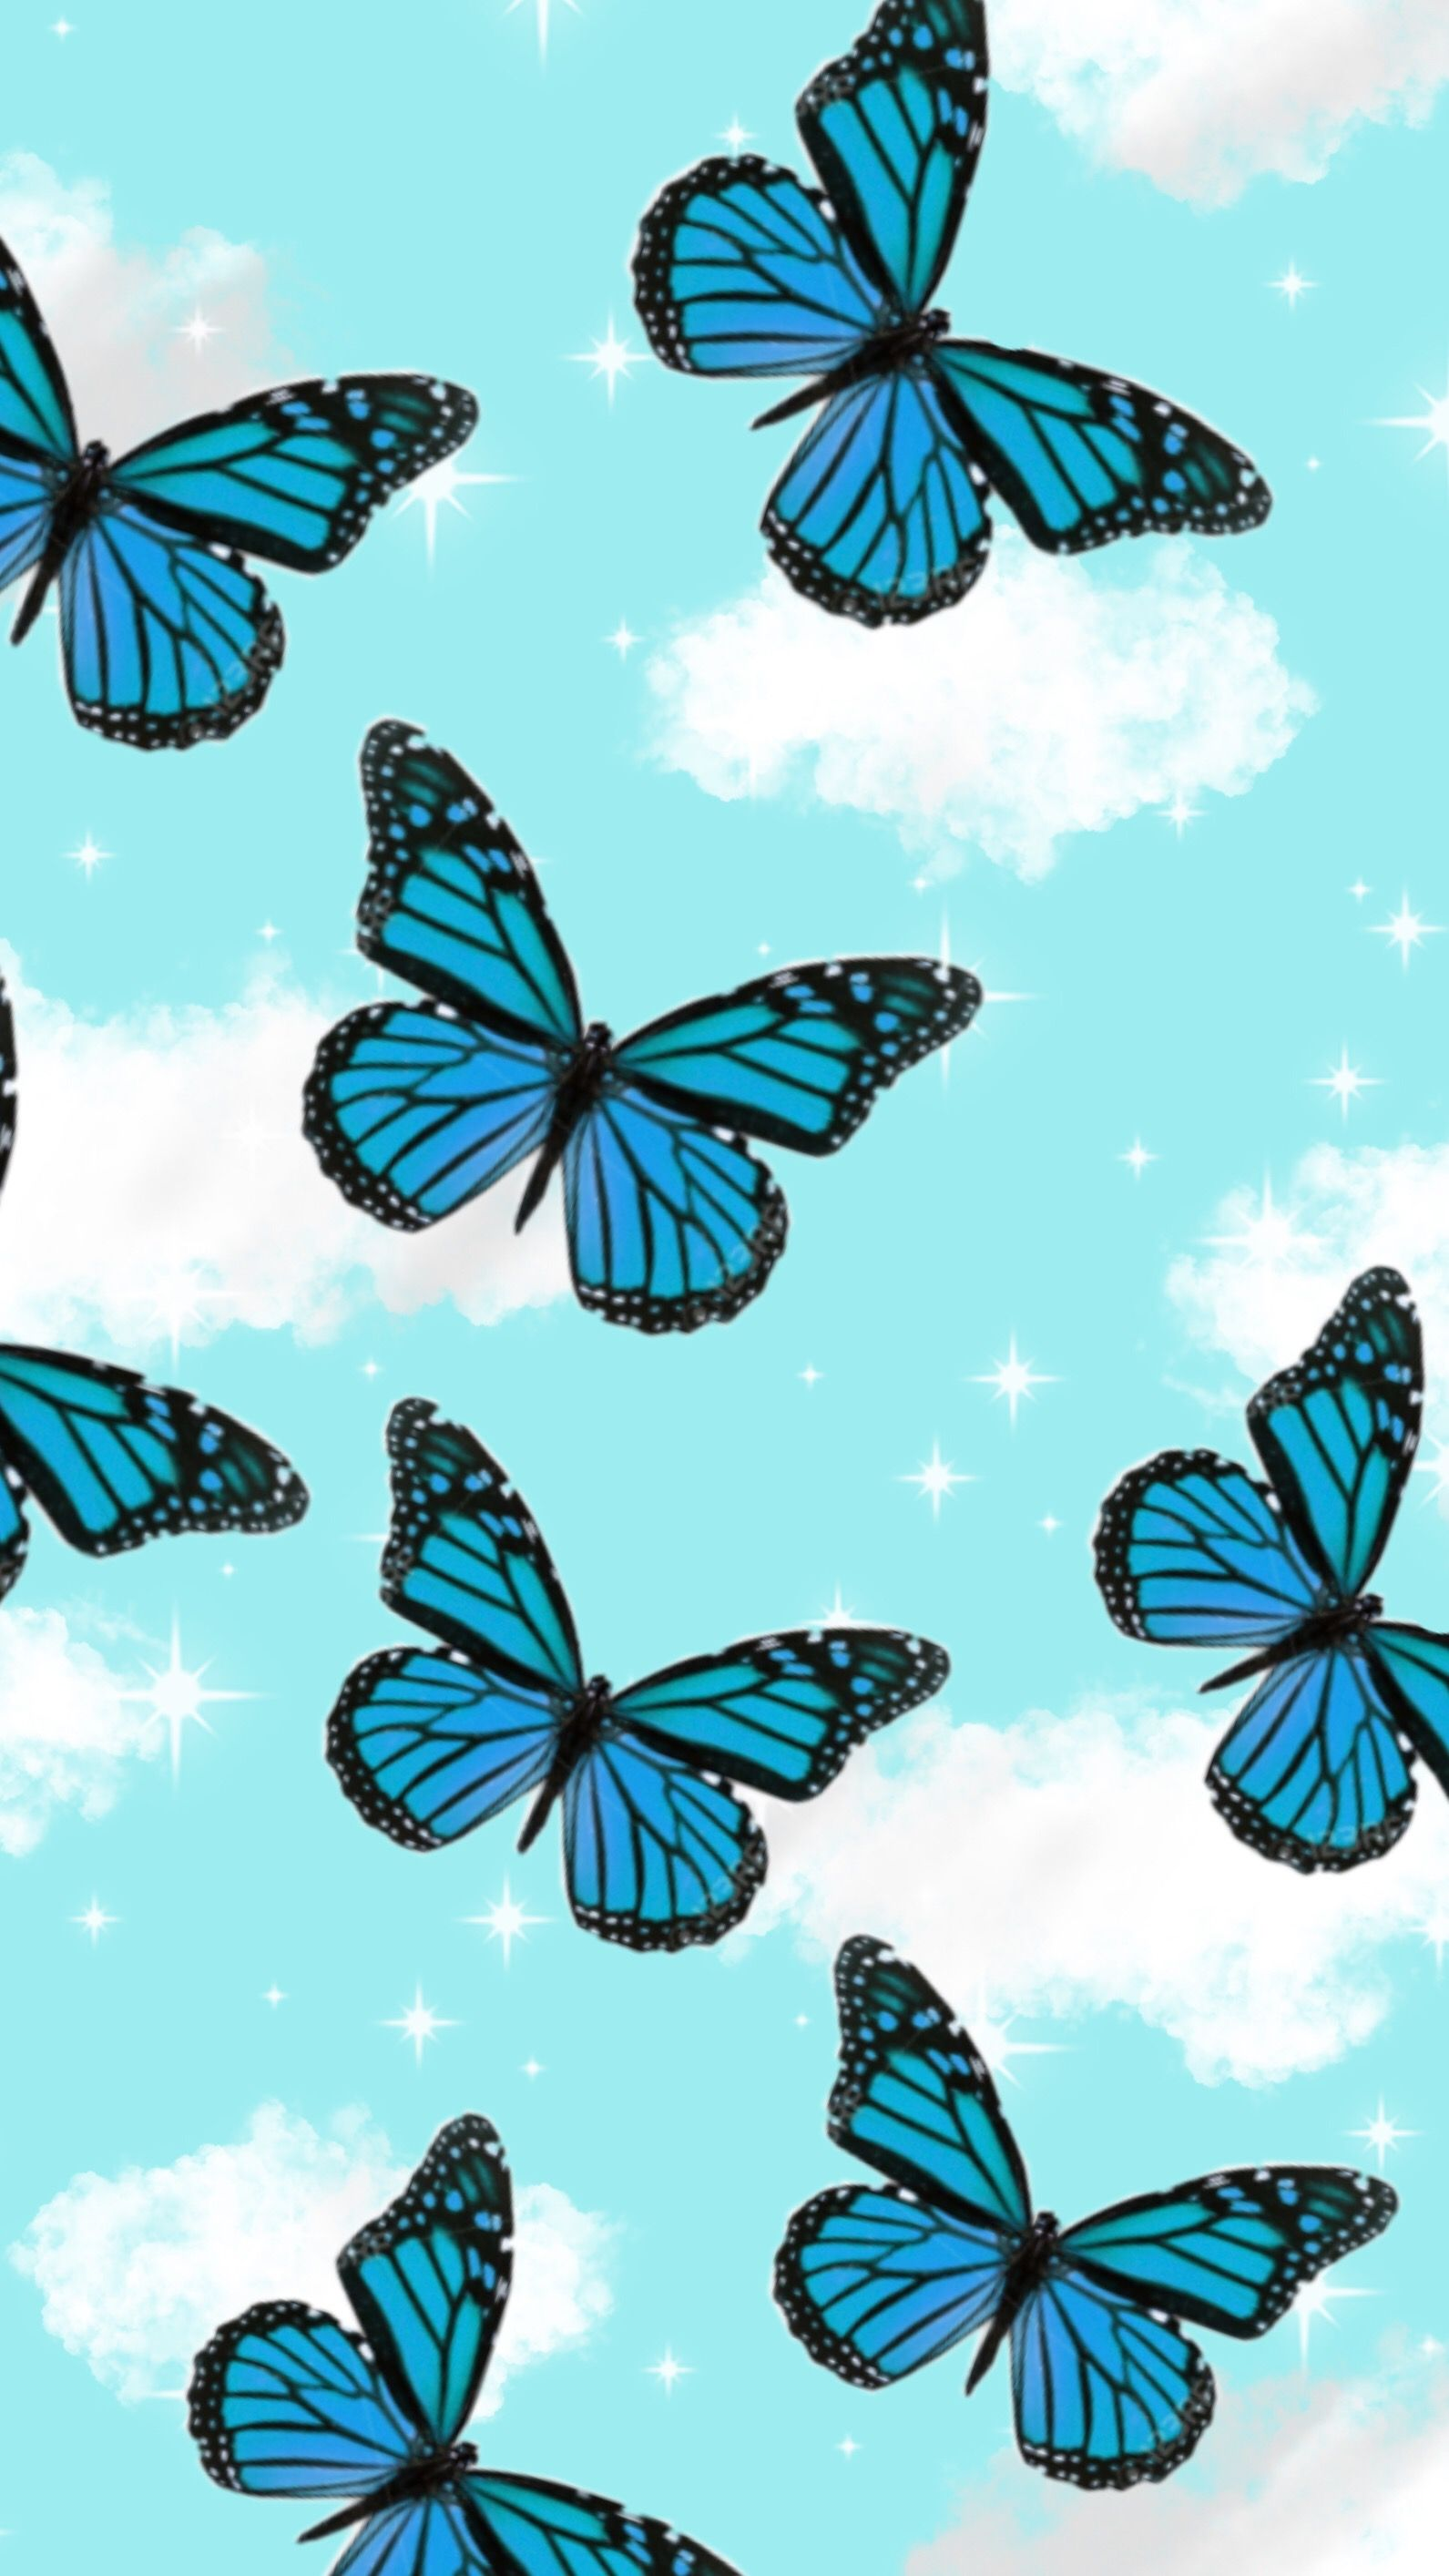 Blue Butterfly Tumblr : butterfly, tumblr, Butterflies, Butterfly, Wallpaper,, Patterns, Wallpaper